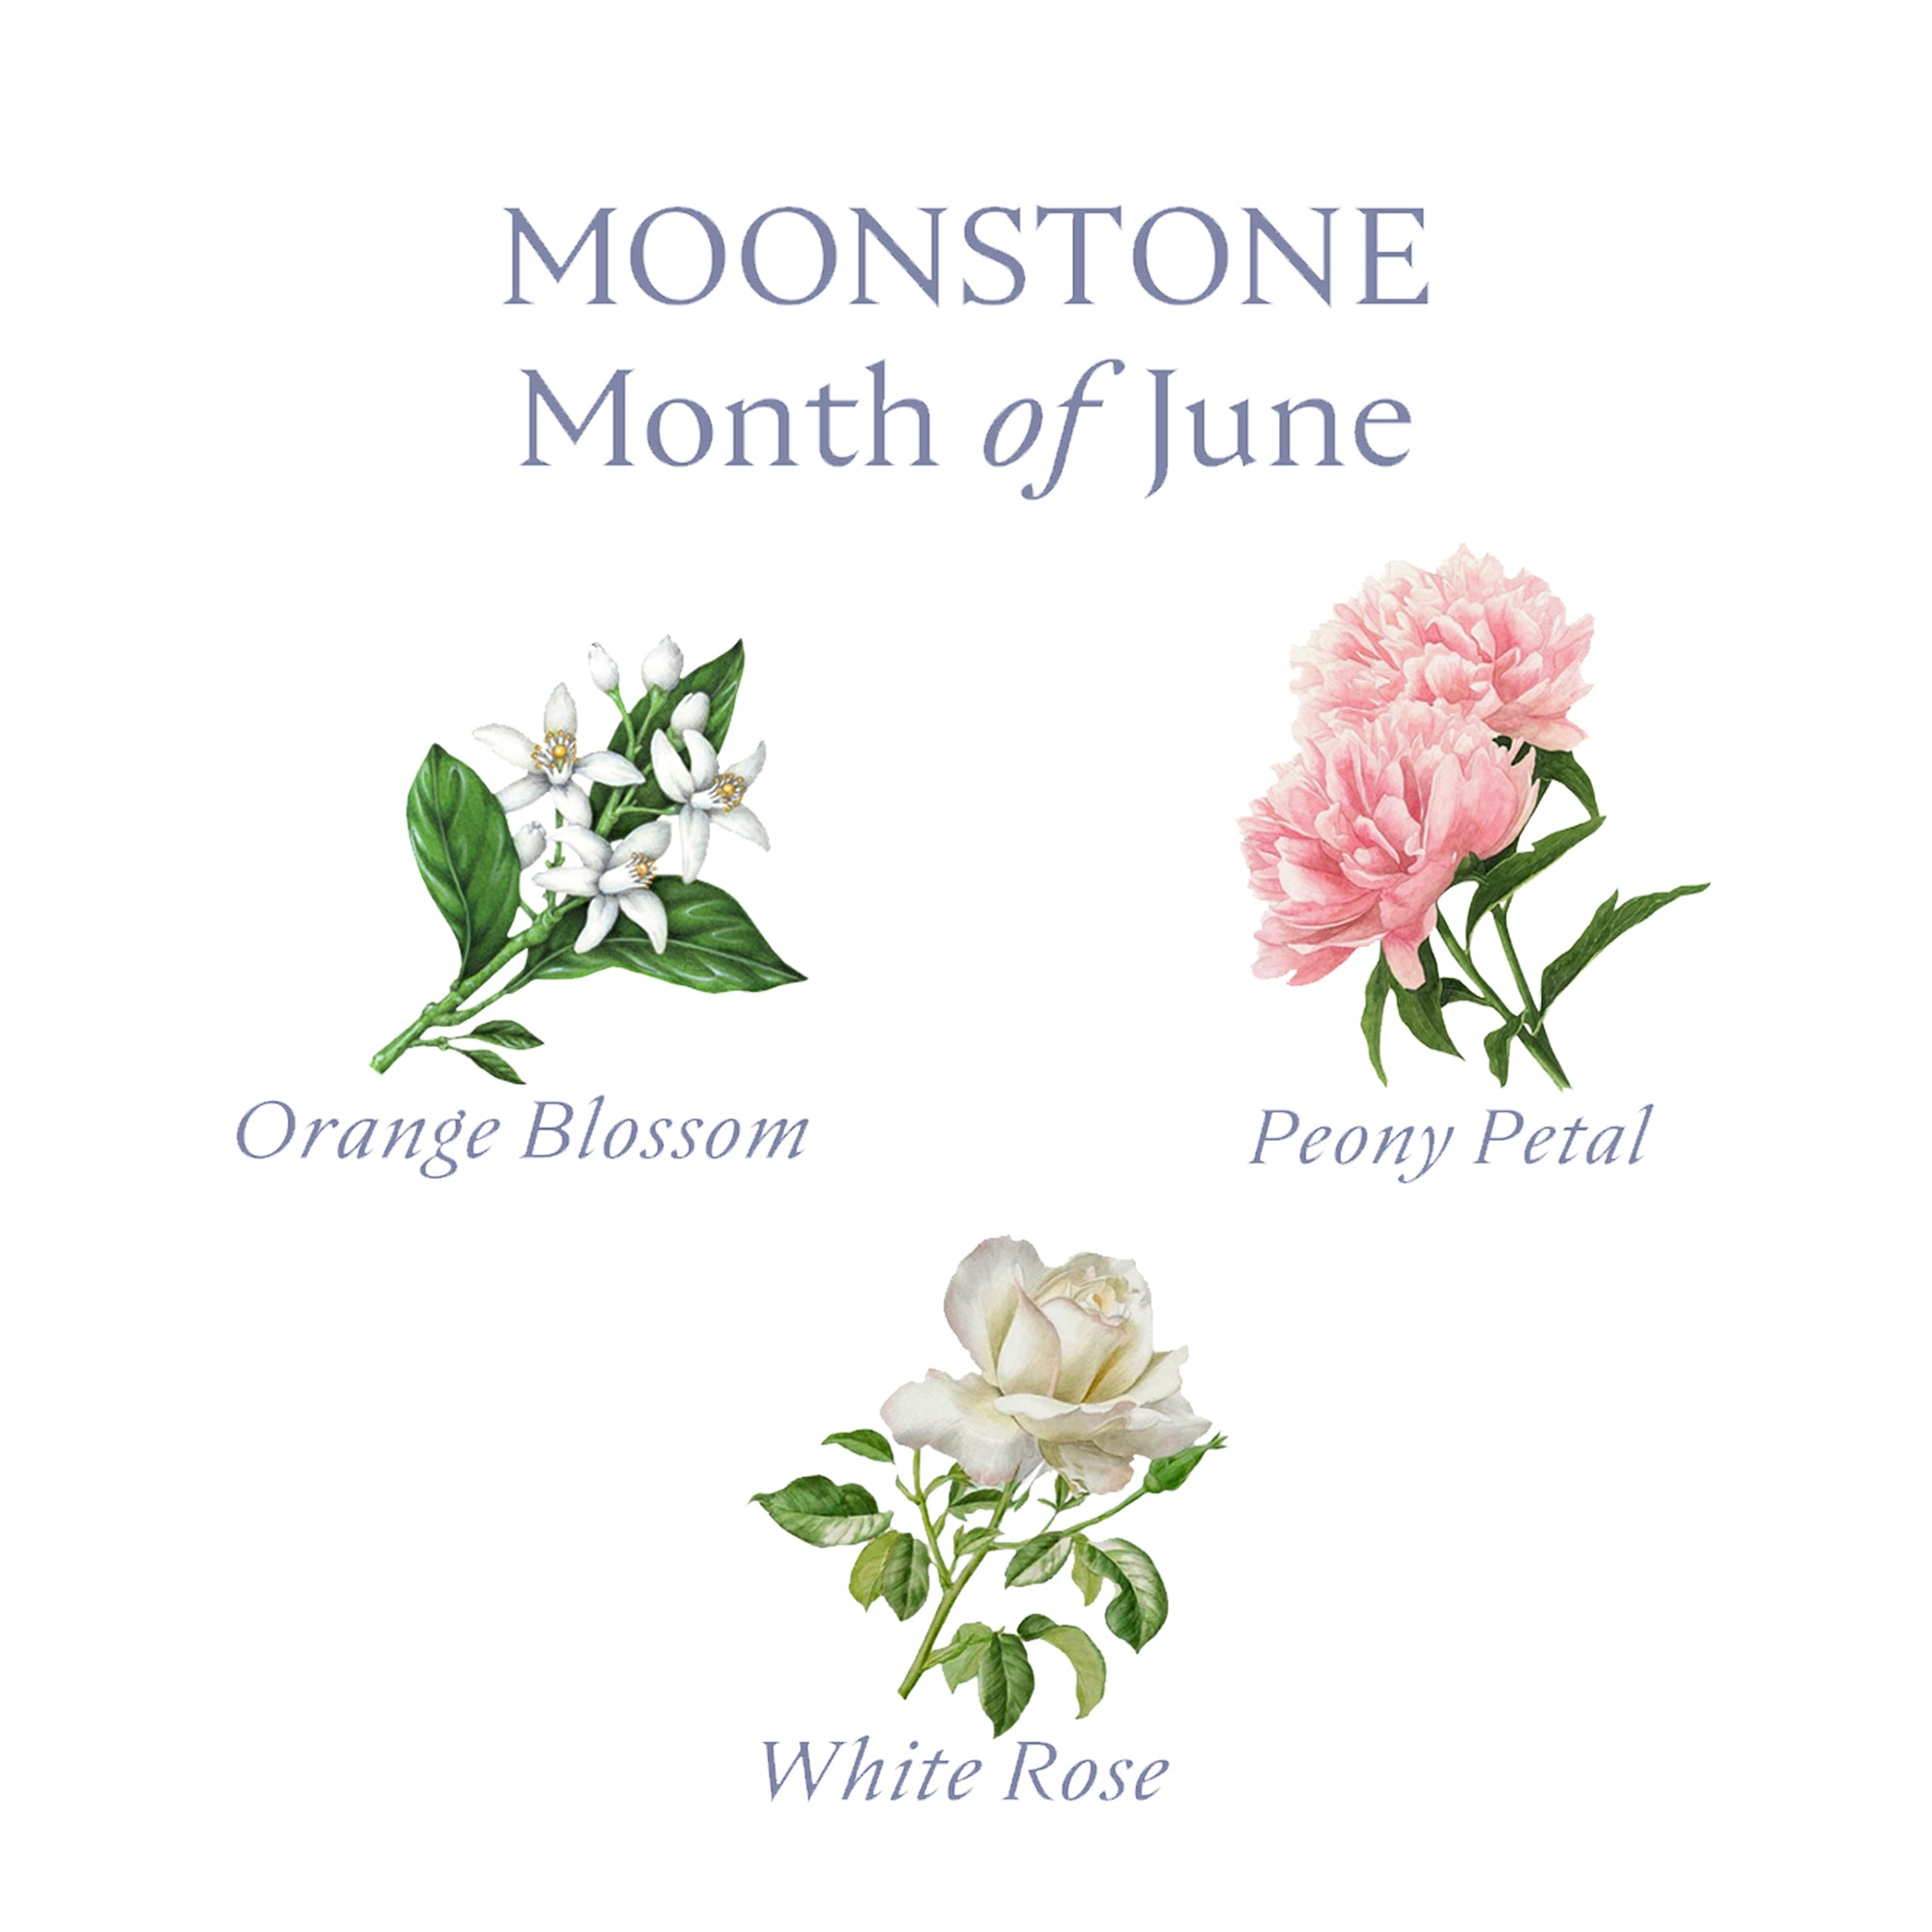 MOONSTONE PERFUME OIL | June - Birthstone Scents